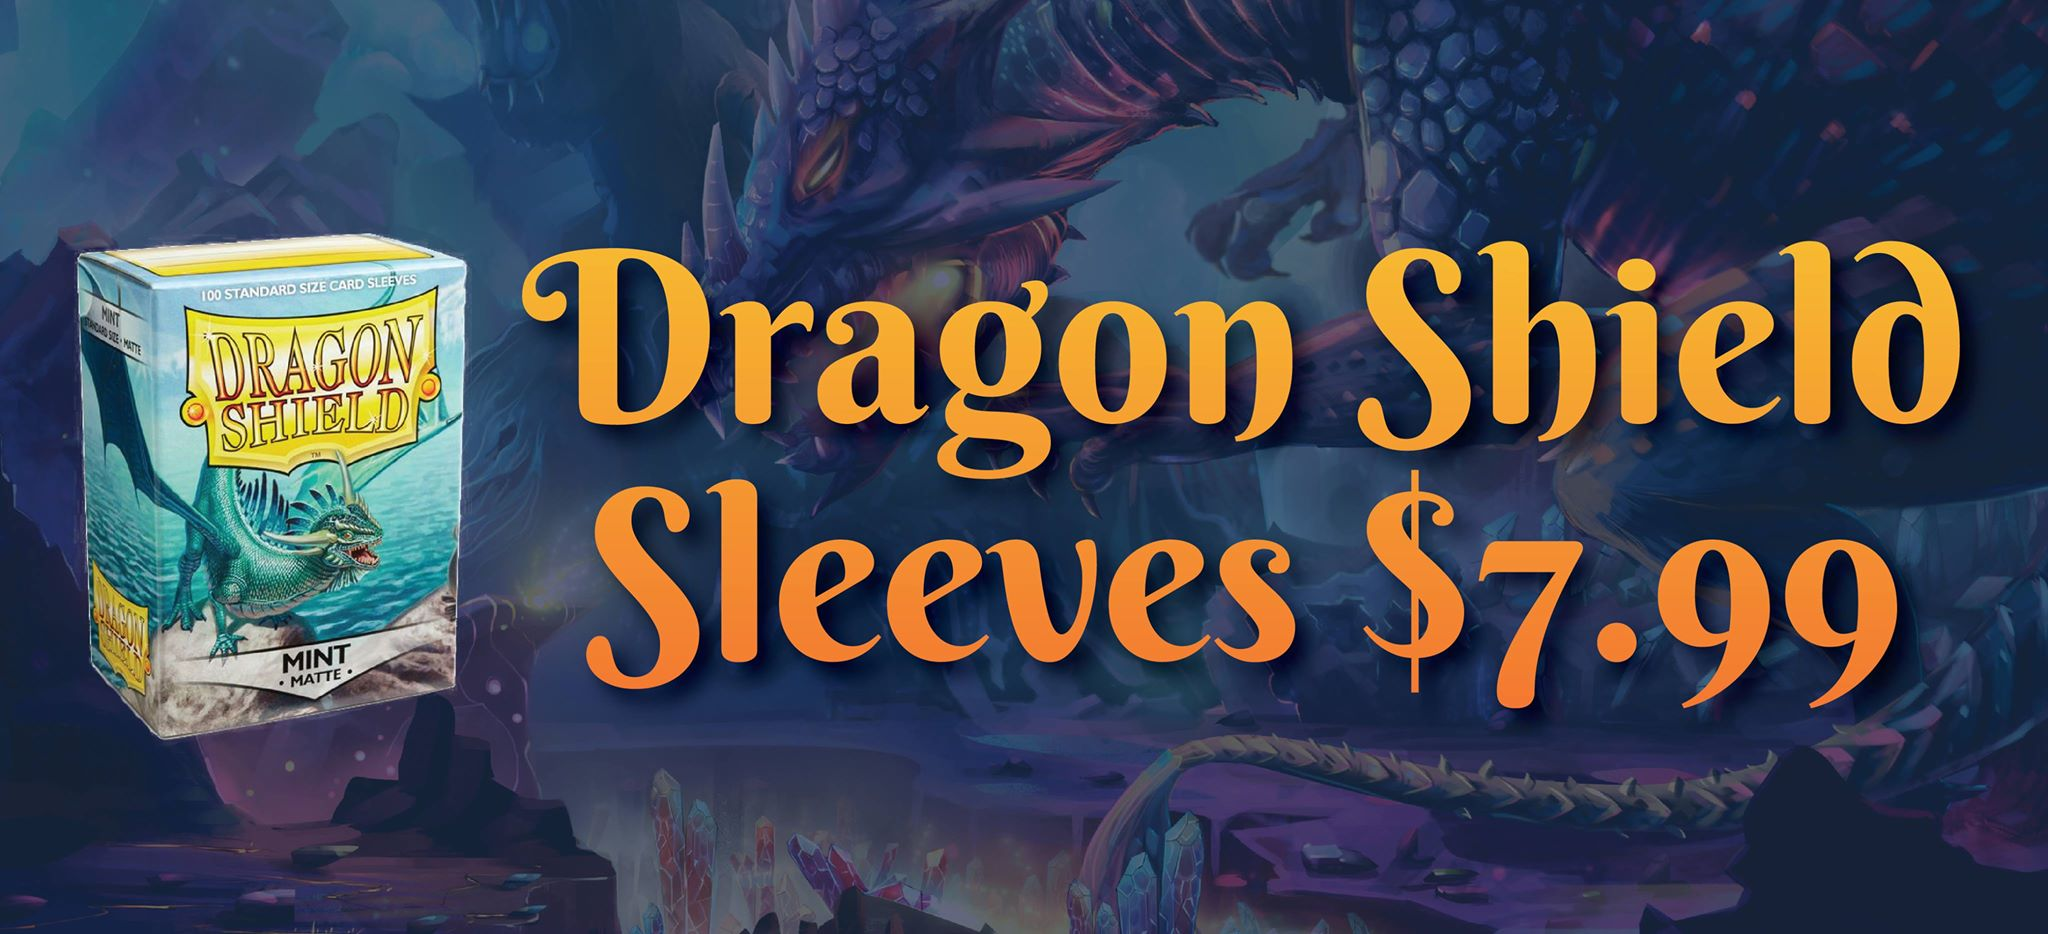 Dragon Shield Card Sleeves $7.99